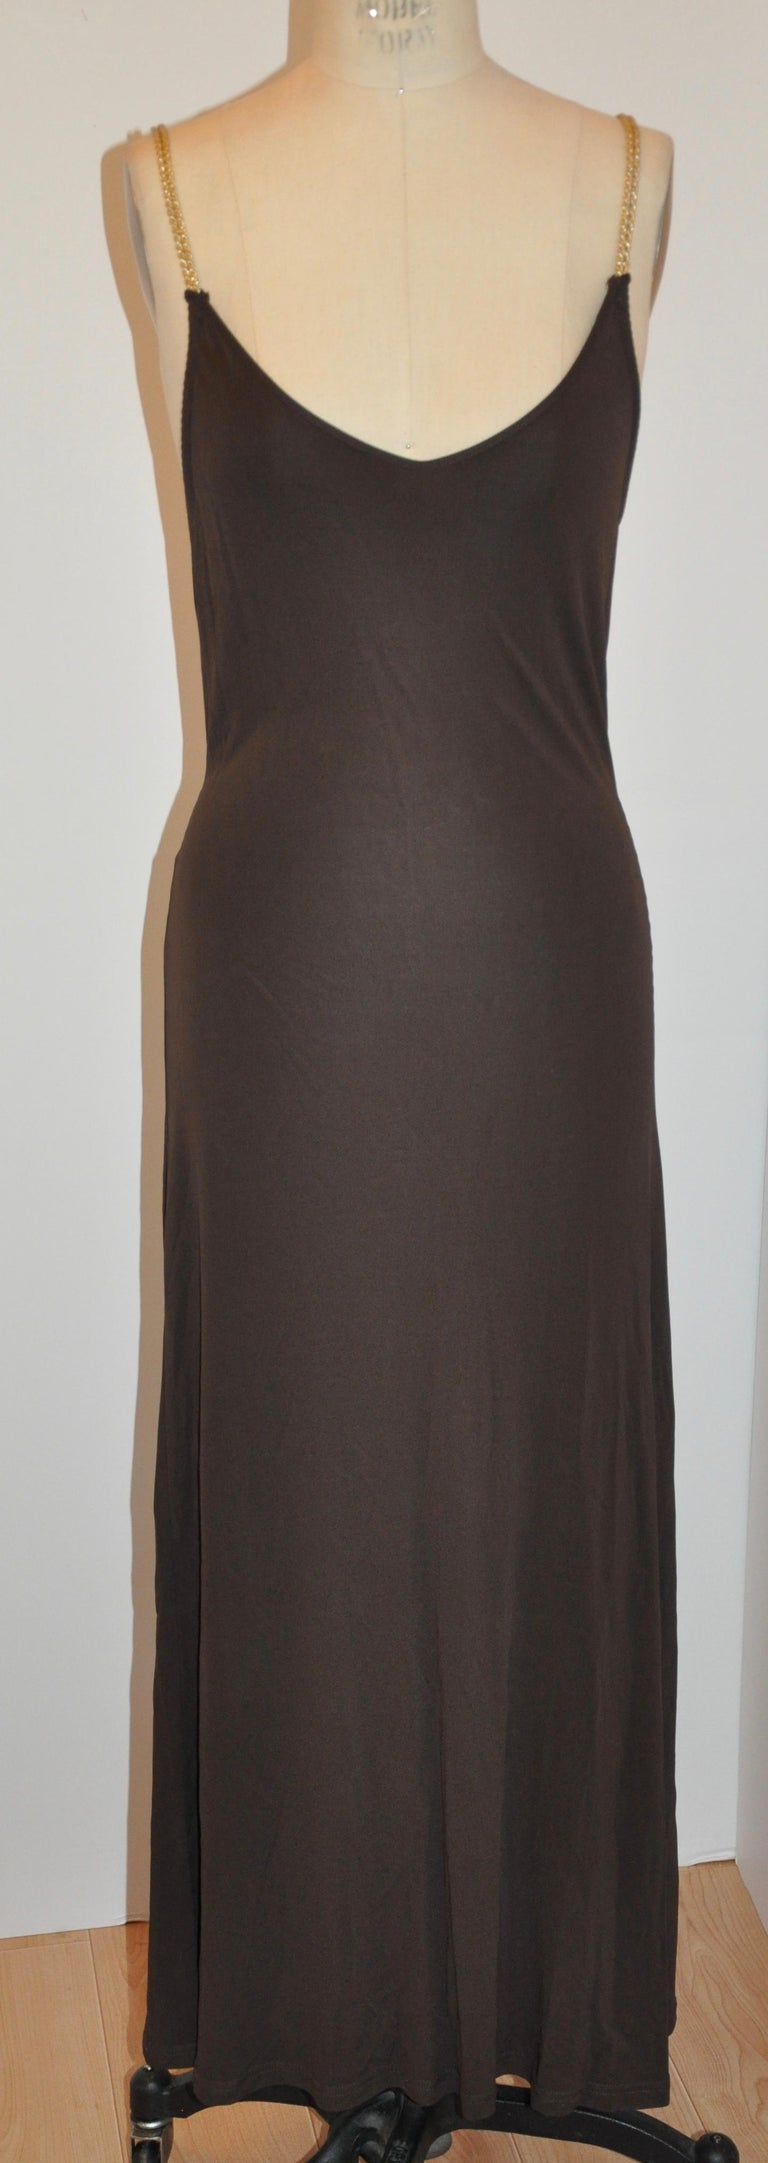 Black Celine Coco-Brown Silk-Blend Jersey Low-Cut Form-Fitting Maxi Dress For Sale